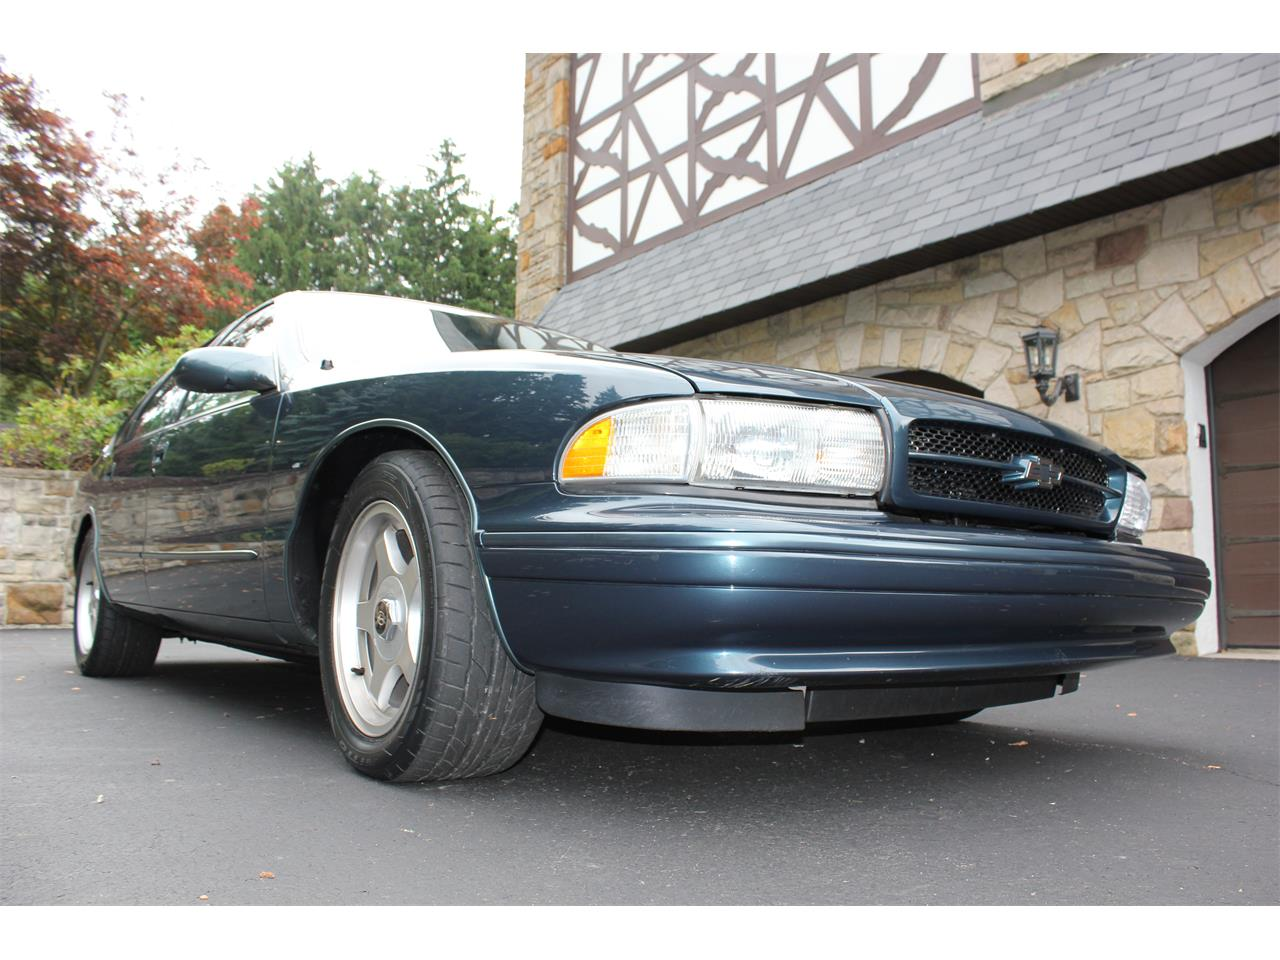 1996 Chevrolet Impala SS (CC-1357512) for sale in Pittsburgh, Pennsylvania